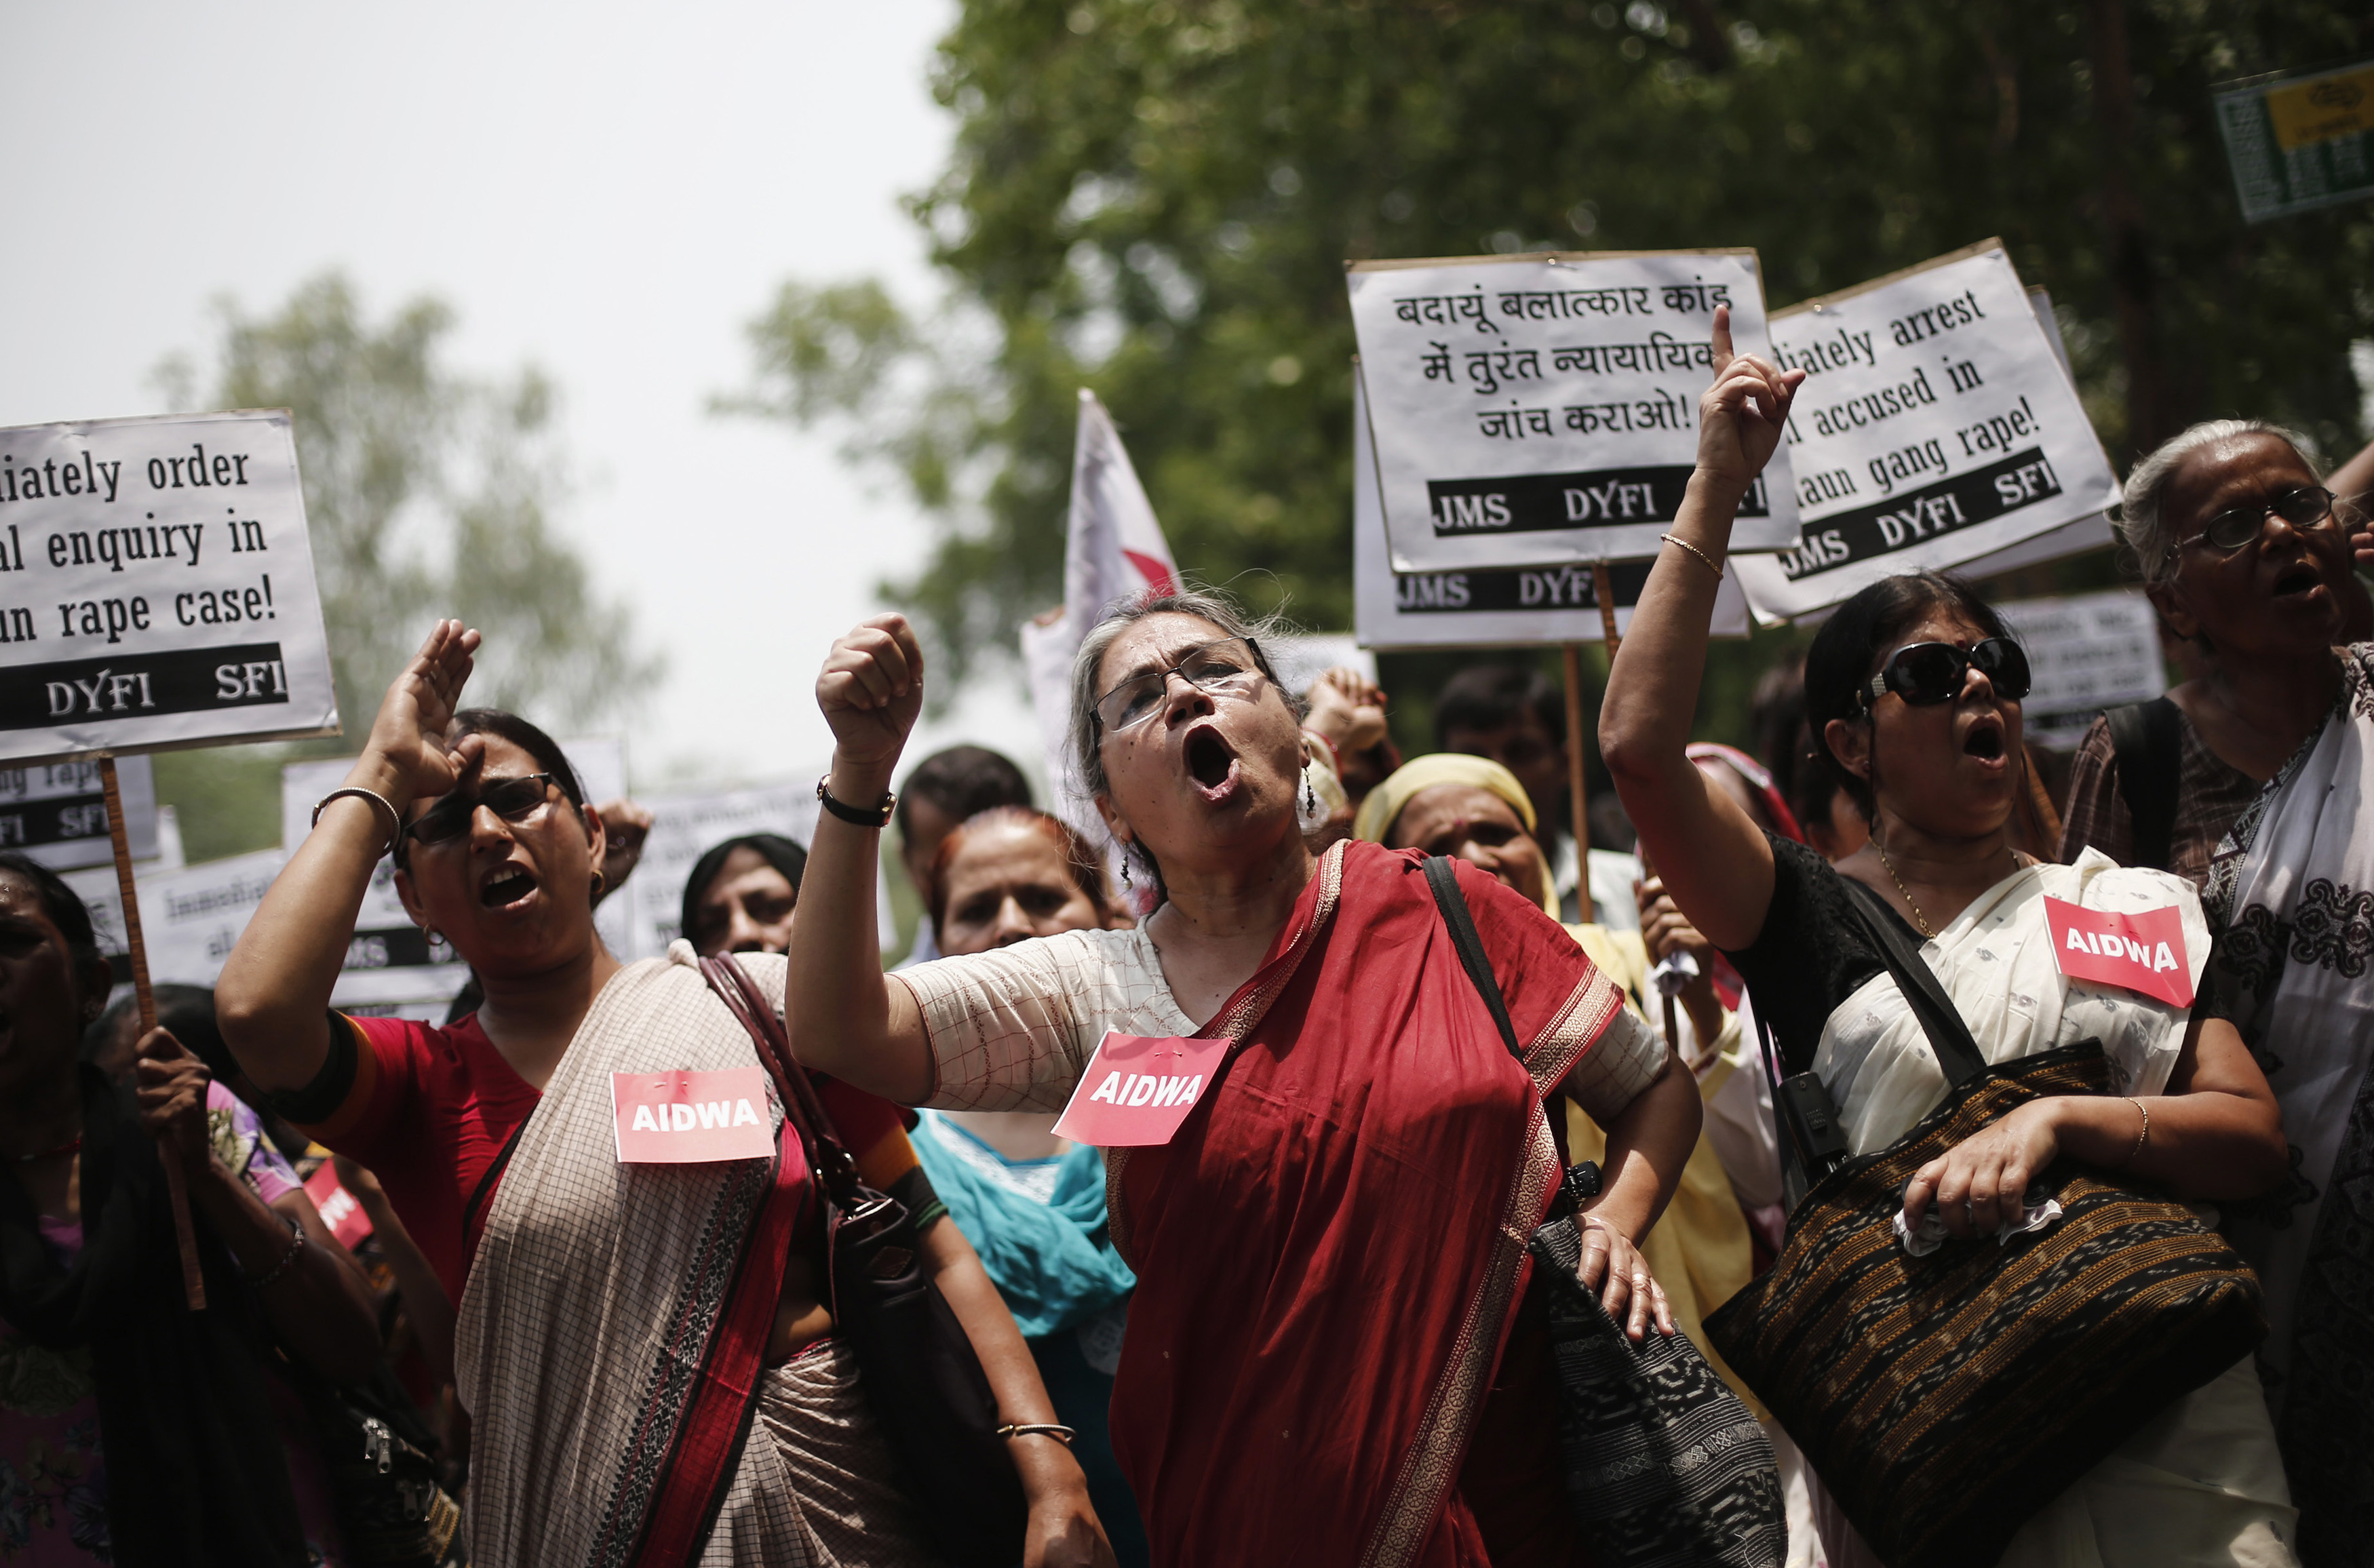 Demonstrators from All India Democratic Women's Association hold placards and shout slogans during a protest against the recent rape and hanging of two teenage girls, in New Delhi, May 31, 2014.